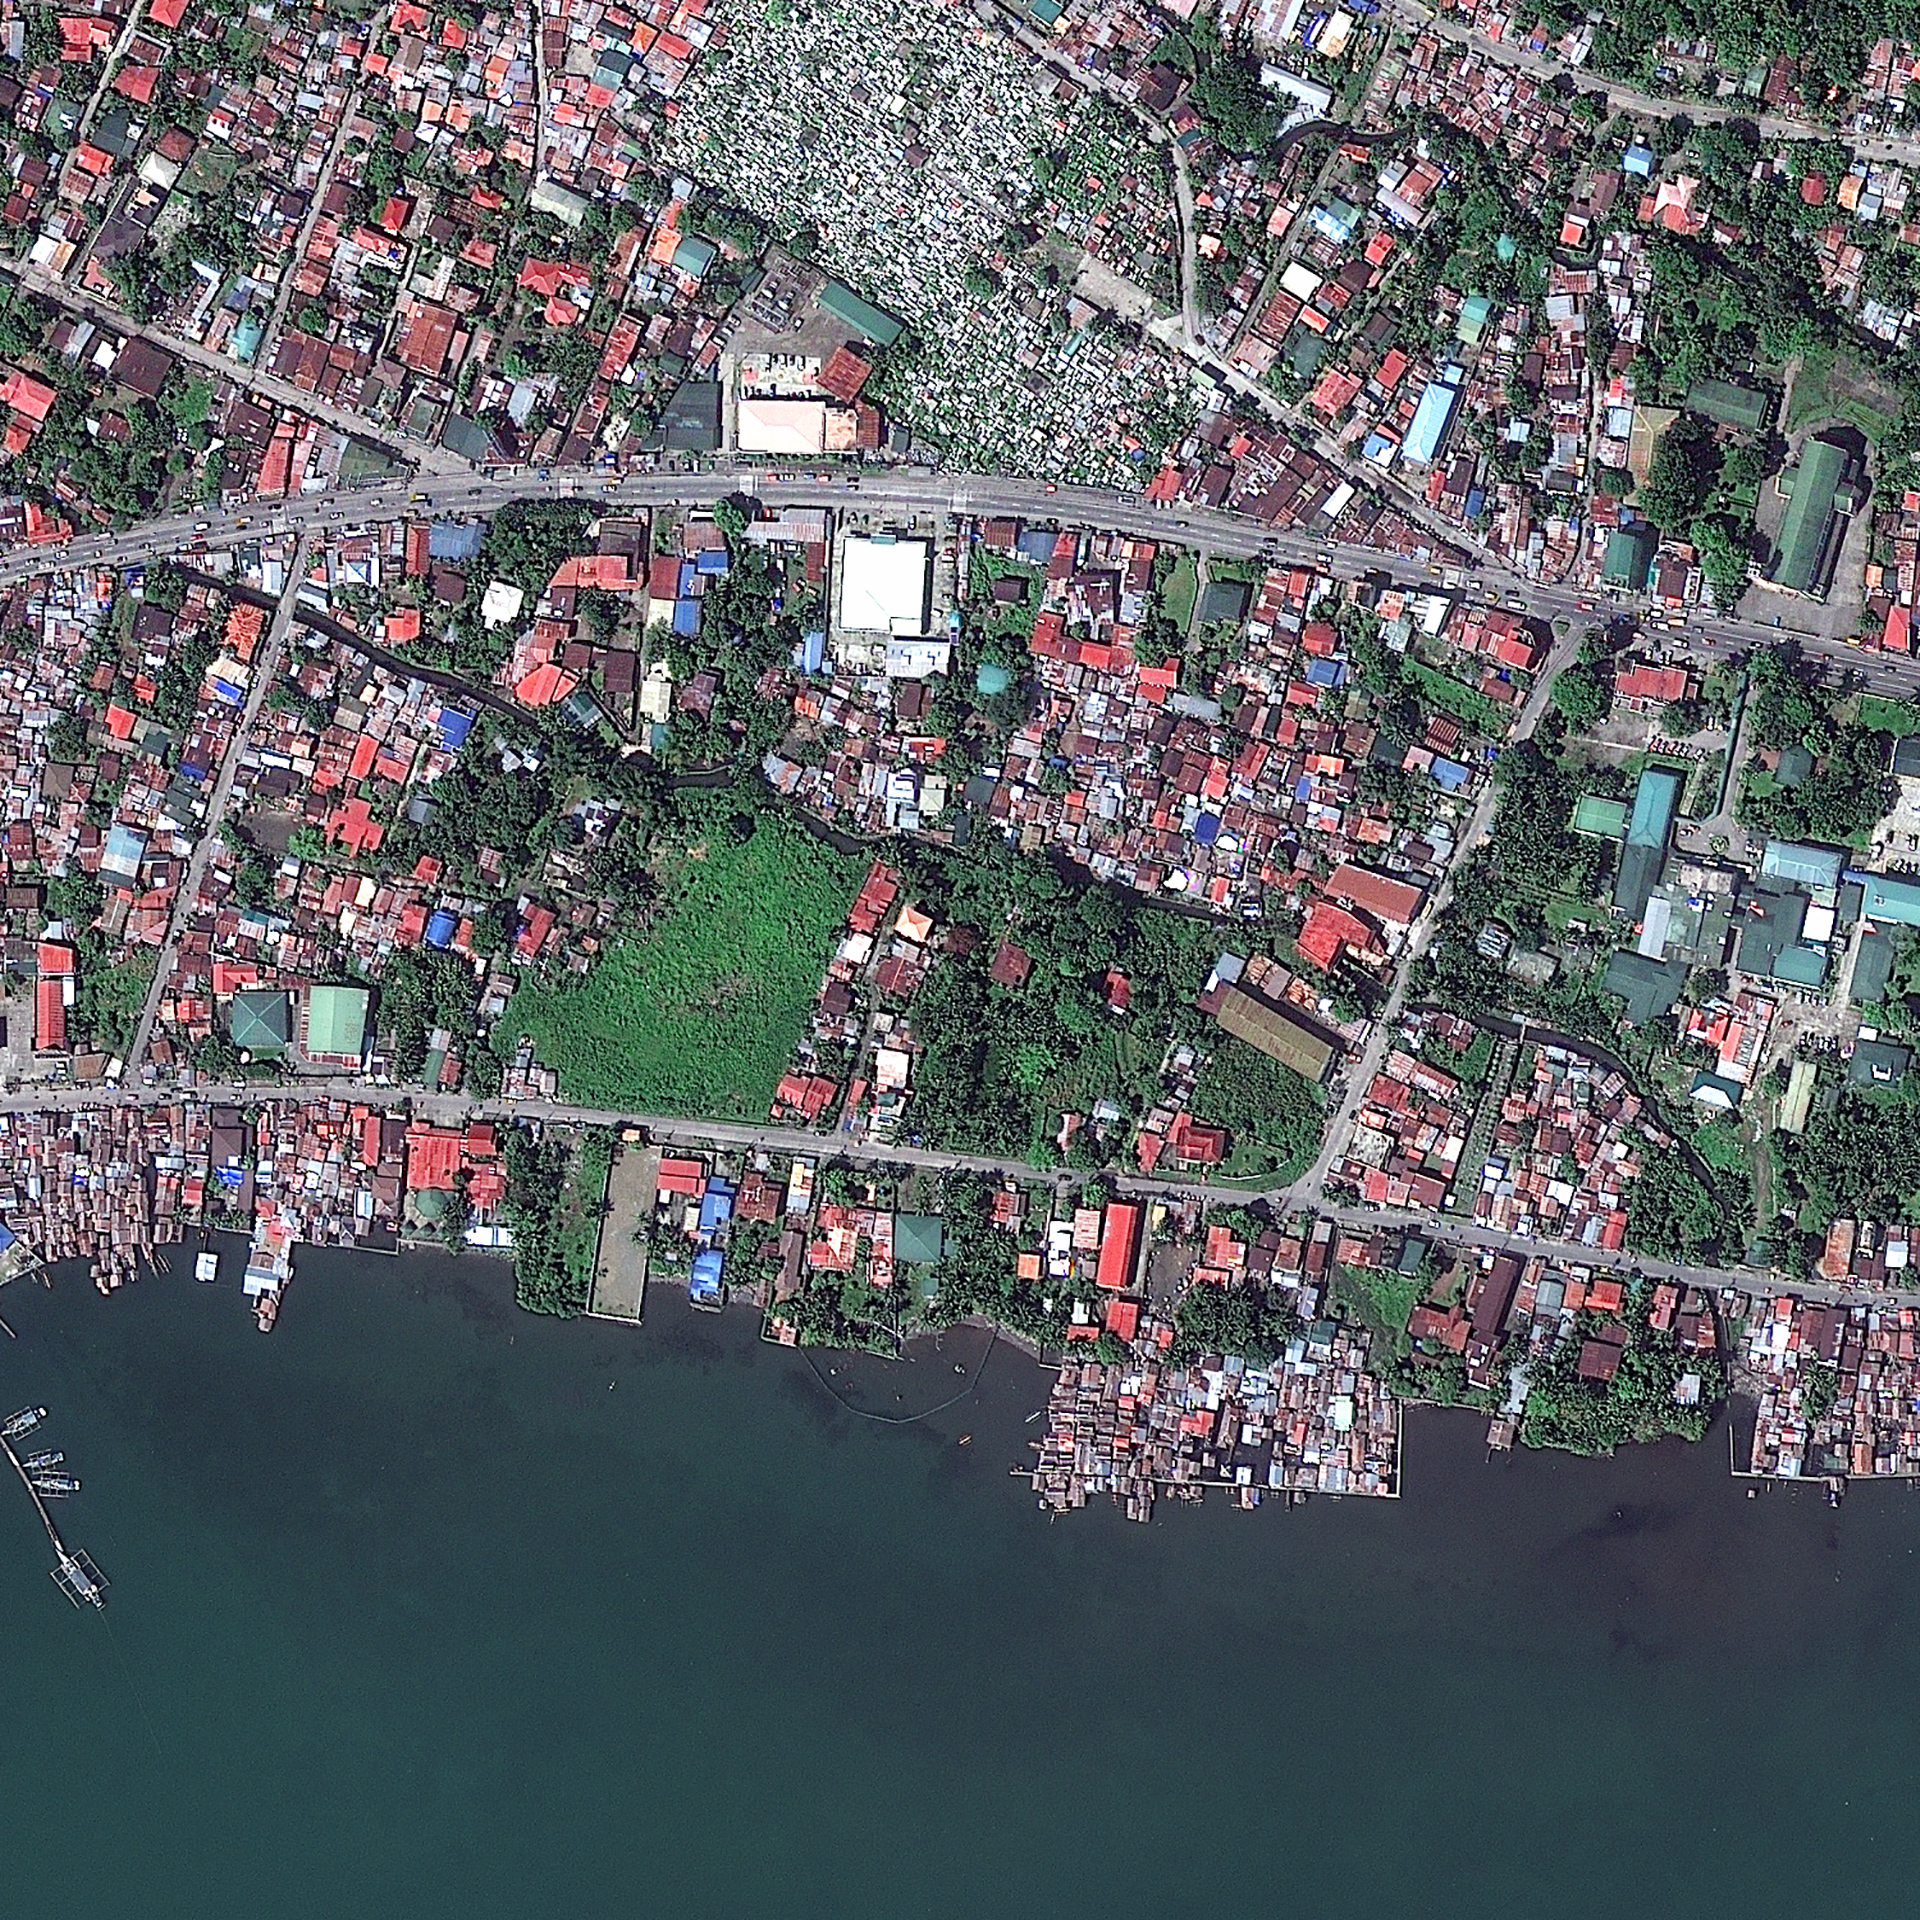 FIGURE 1. Before the typhoon: Tacloban City, Philippines, captured Feb. 23, 2012, courtesy of DigitalGlobe.